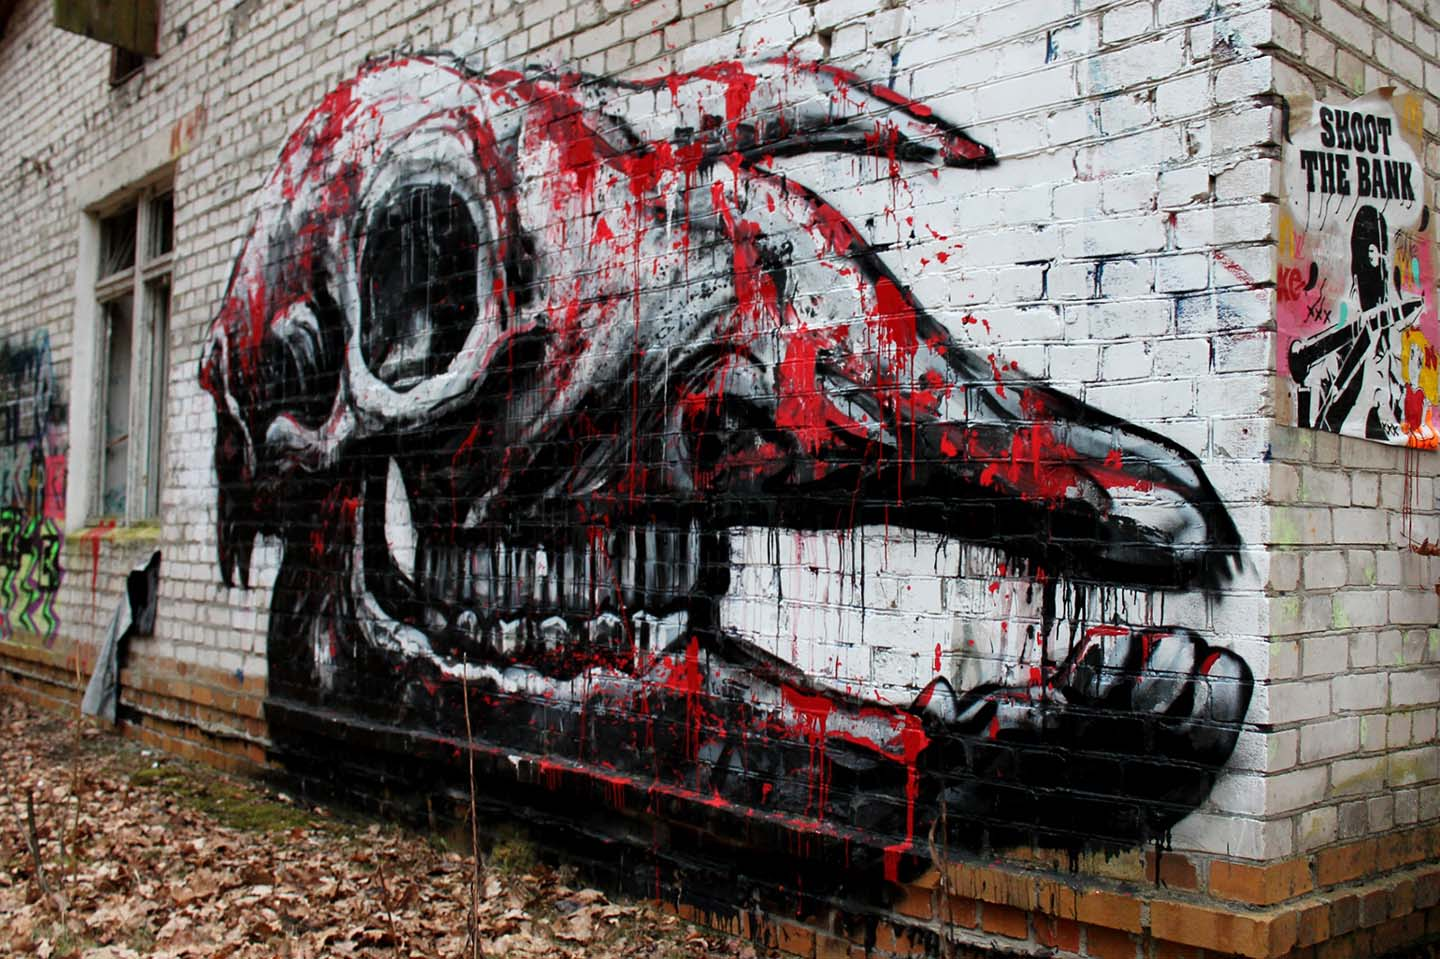 Mural of a skull by Belgian Street Artist Roa in Grabowsee near Berlin